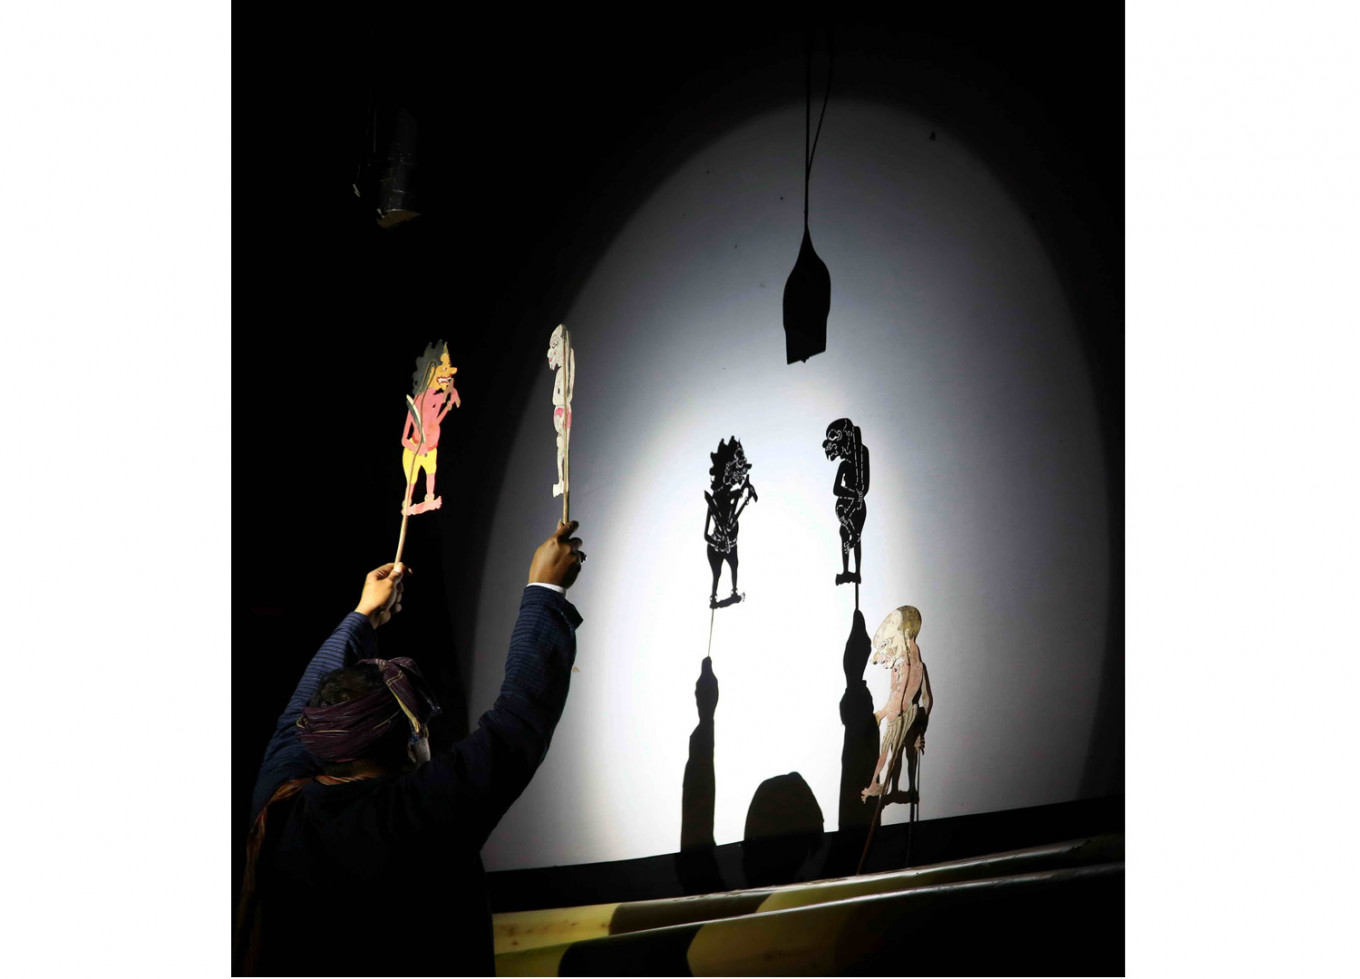 Tunes and shadows: Keroncong Wayang Gendut, better known as Cong Way Ndut, broke with tradition by adding the tunes of keroncong folk music into its shadow puppet performance. JP/PJ Leo